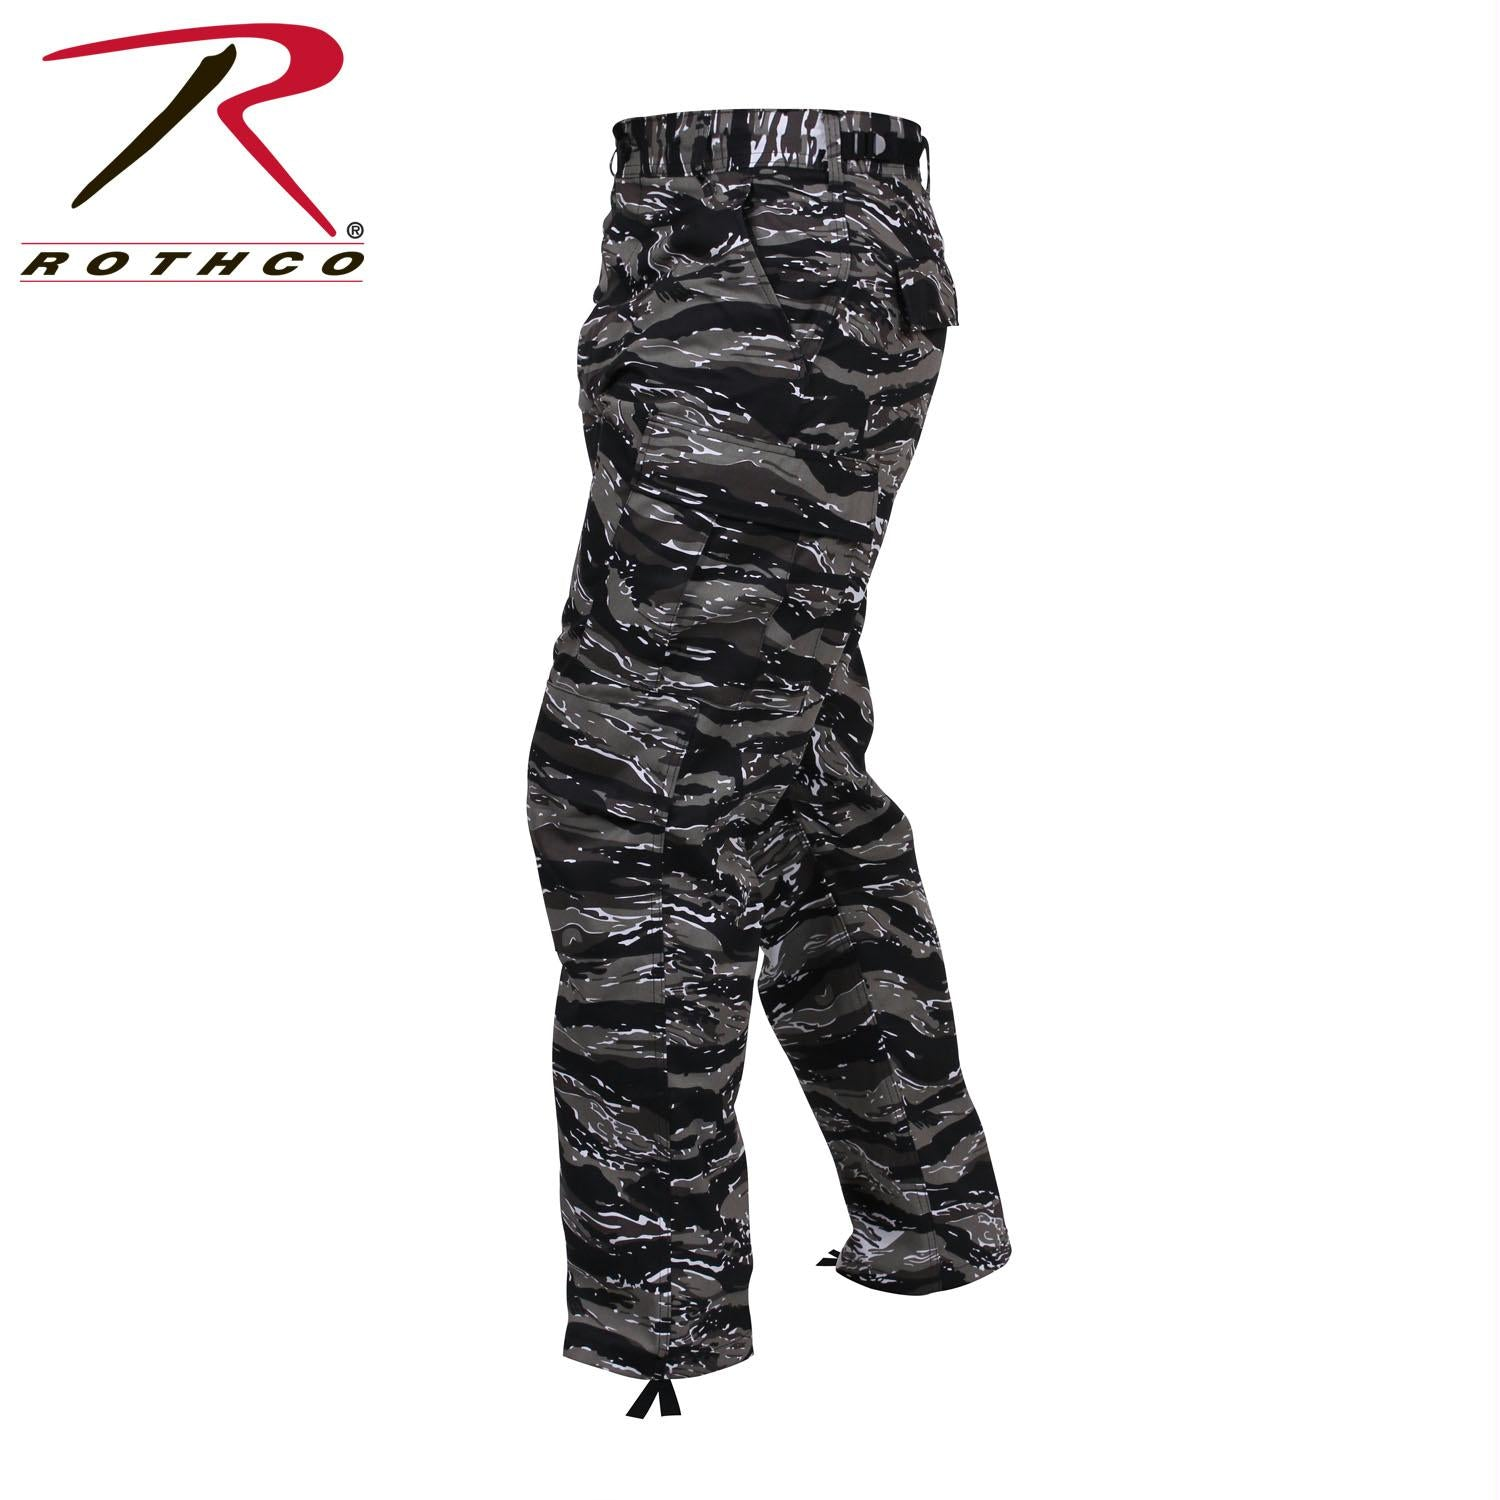 Rothco Color Camo Tactical BDU Pant - Urban Tiger Stripe Camo / XL